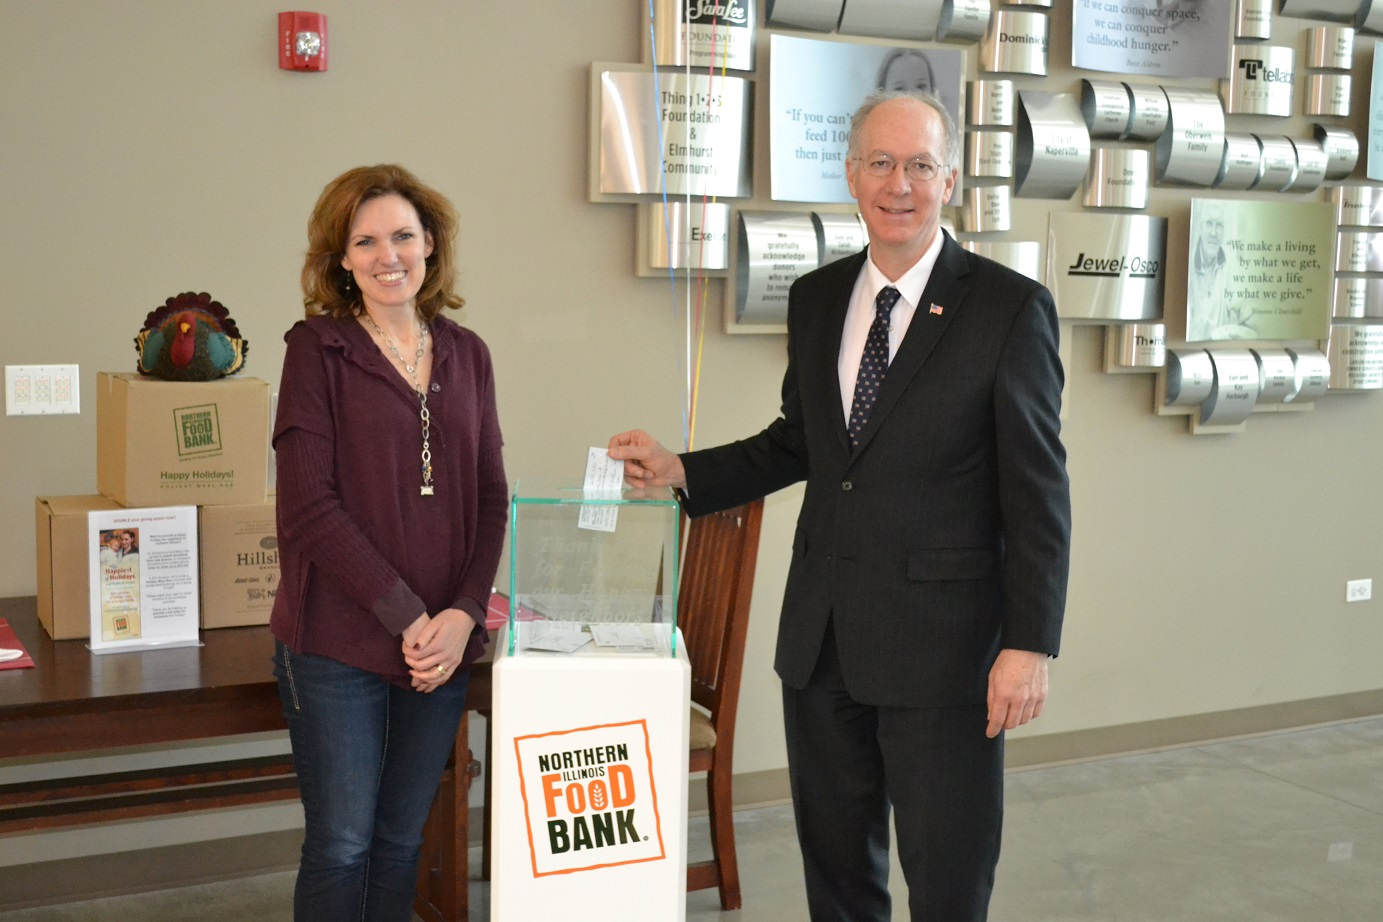 Julie Yurko, Vice President of Philanthropy, Northern Illinois Food Bank and Congressman Bill Foster